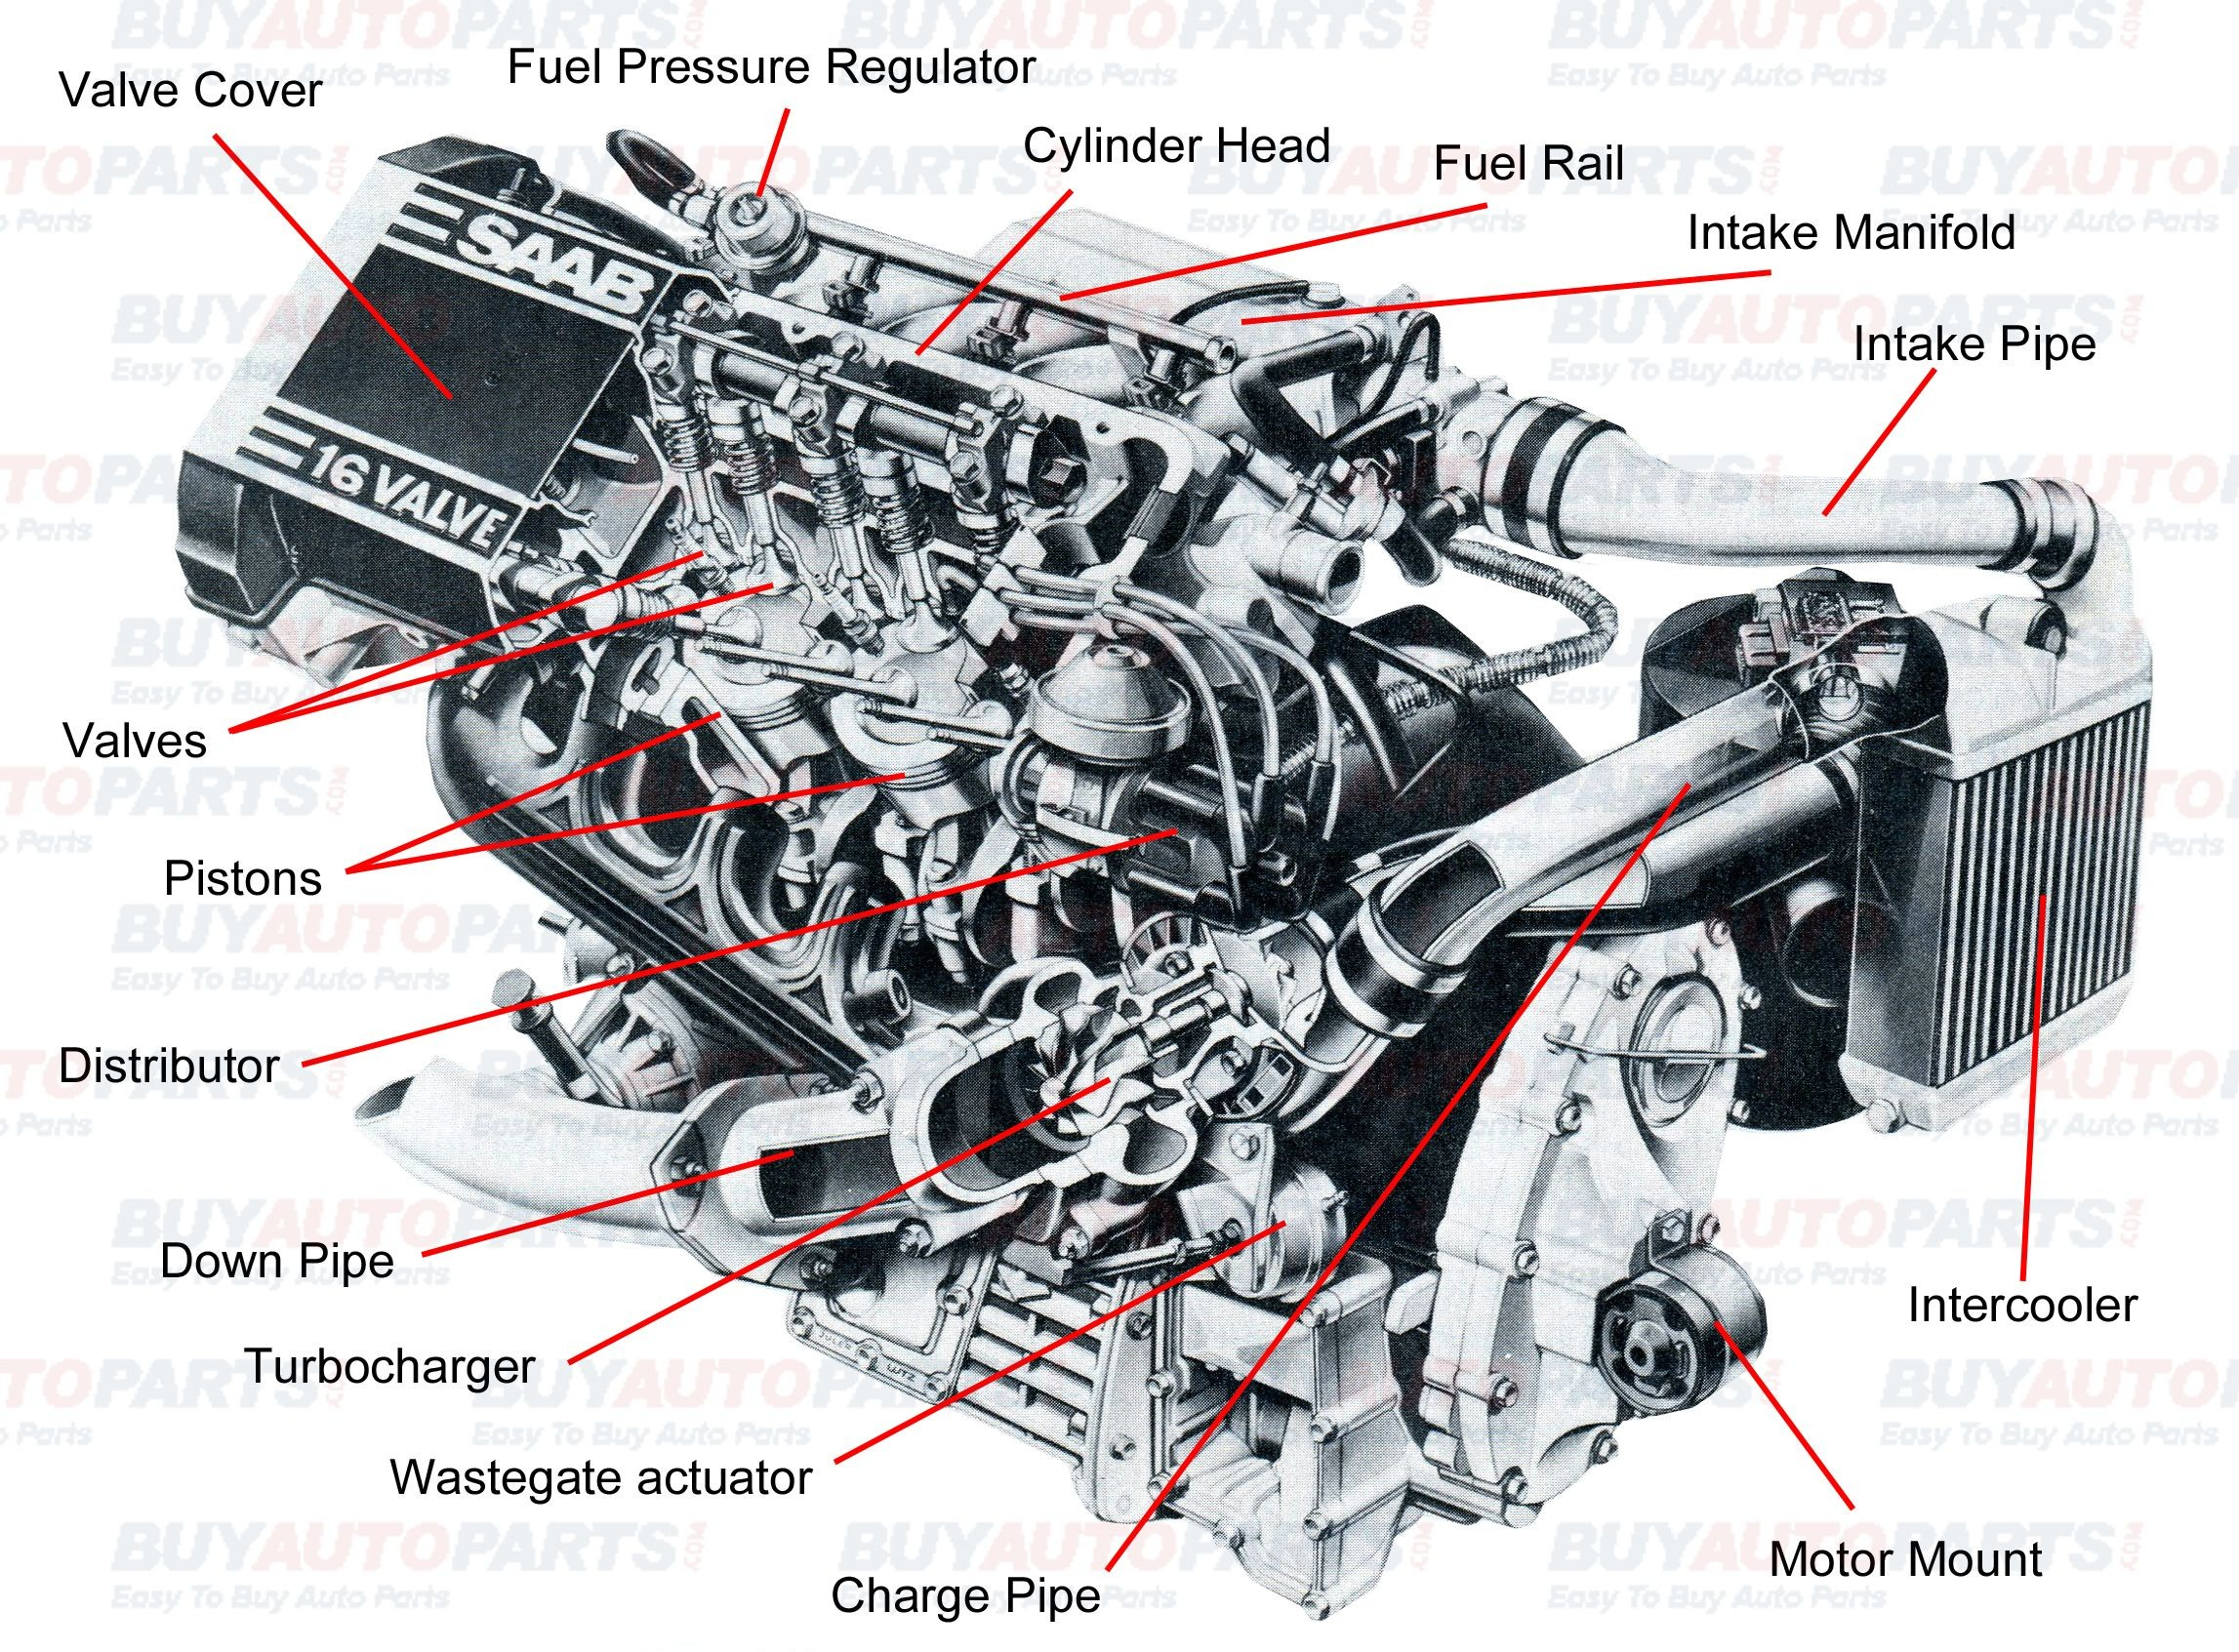 Car Motor Diagram | My Wiring DIagram